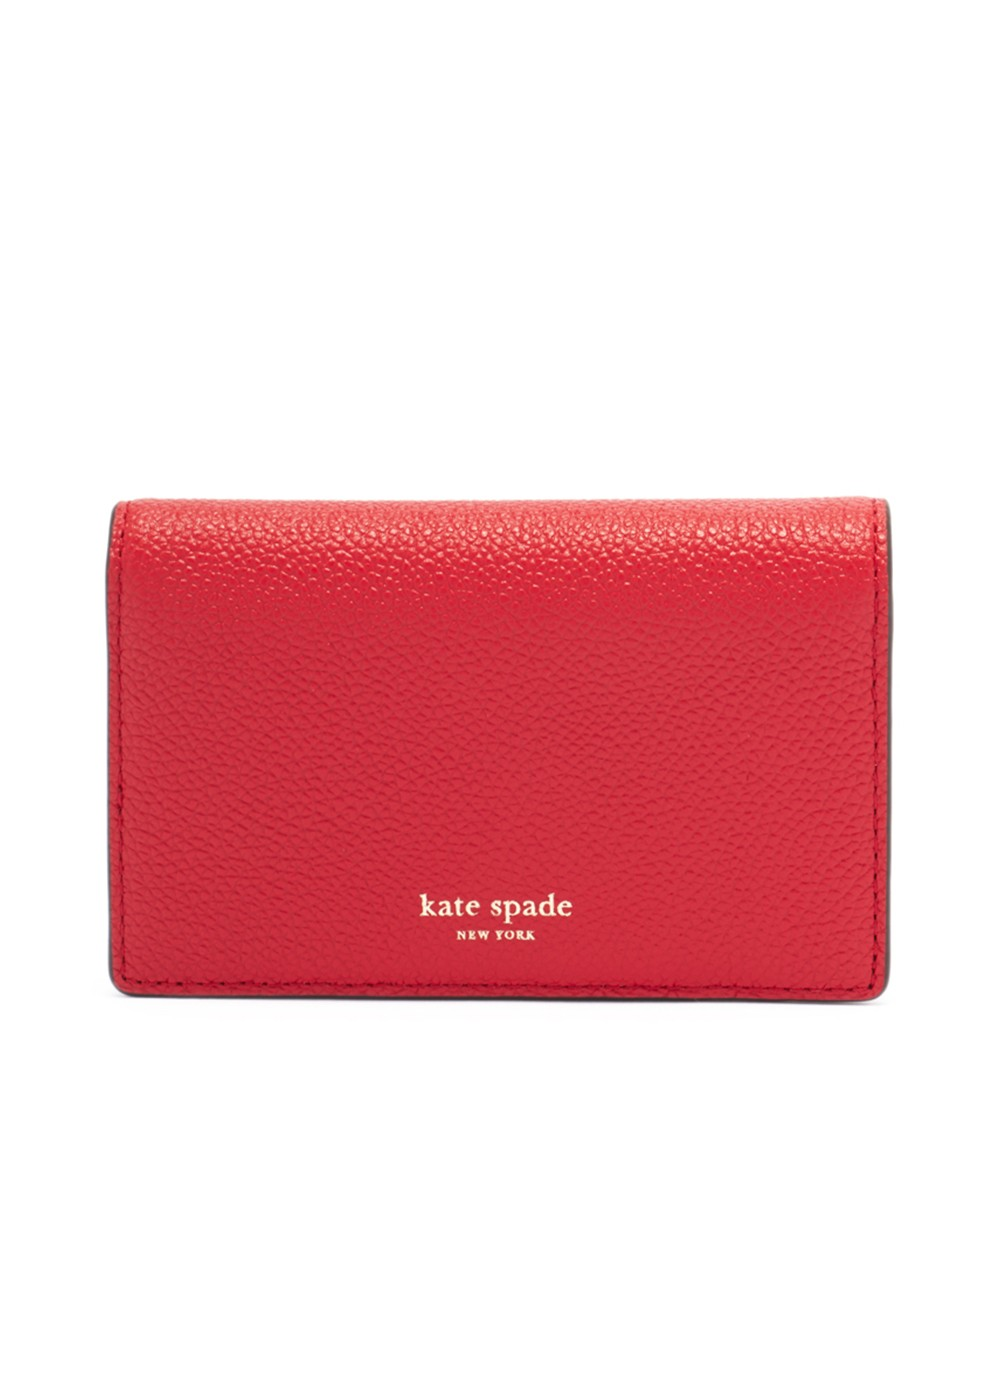 【最大48%OFF】【4/2入荷】【'19春夏新作】MARGAUX SMALL KEYRING WALLET|HOT CHILI|キーケース|kate spade new york - wallet and more